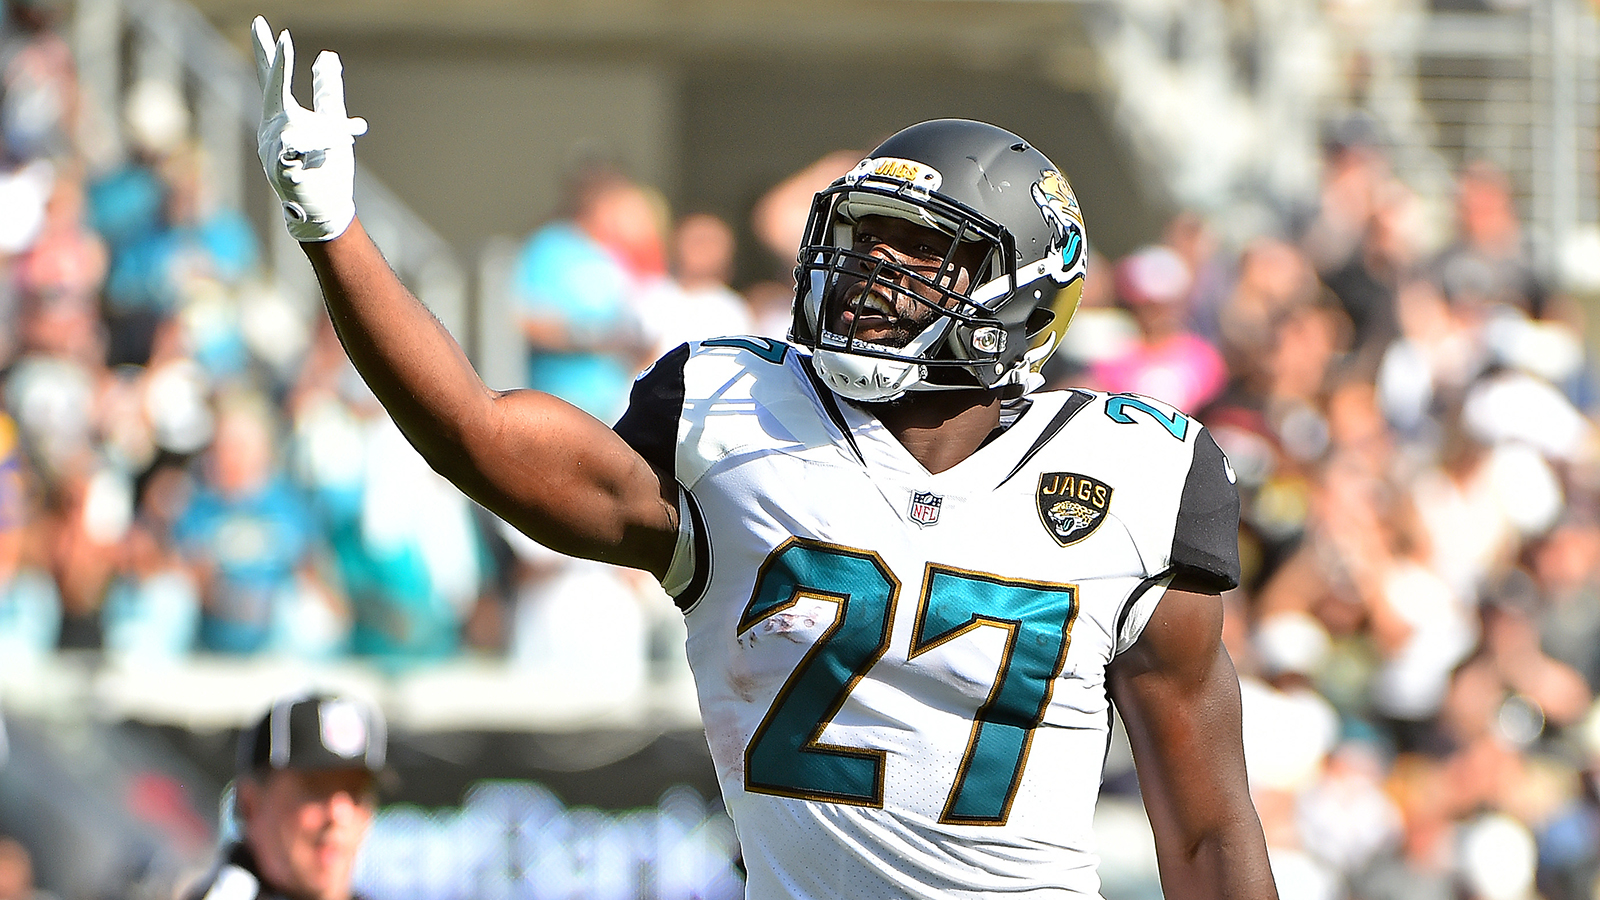 Jaguars RB Leonard Fournette questionable to play vs. Browns